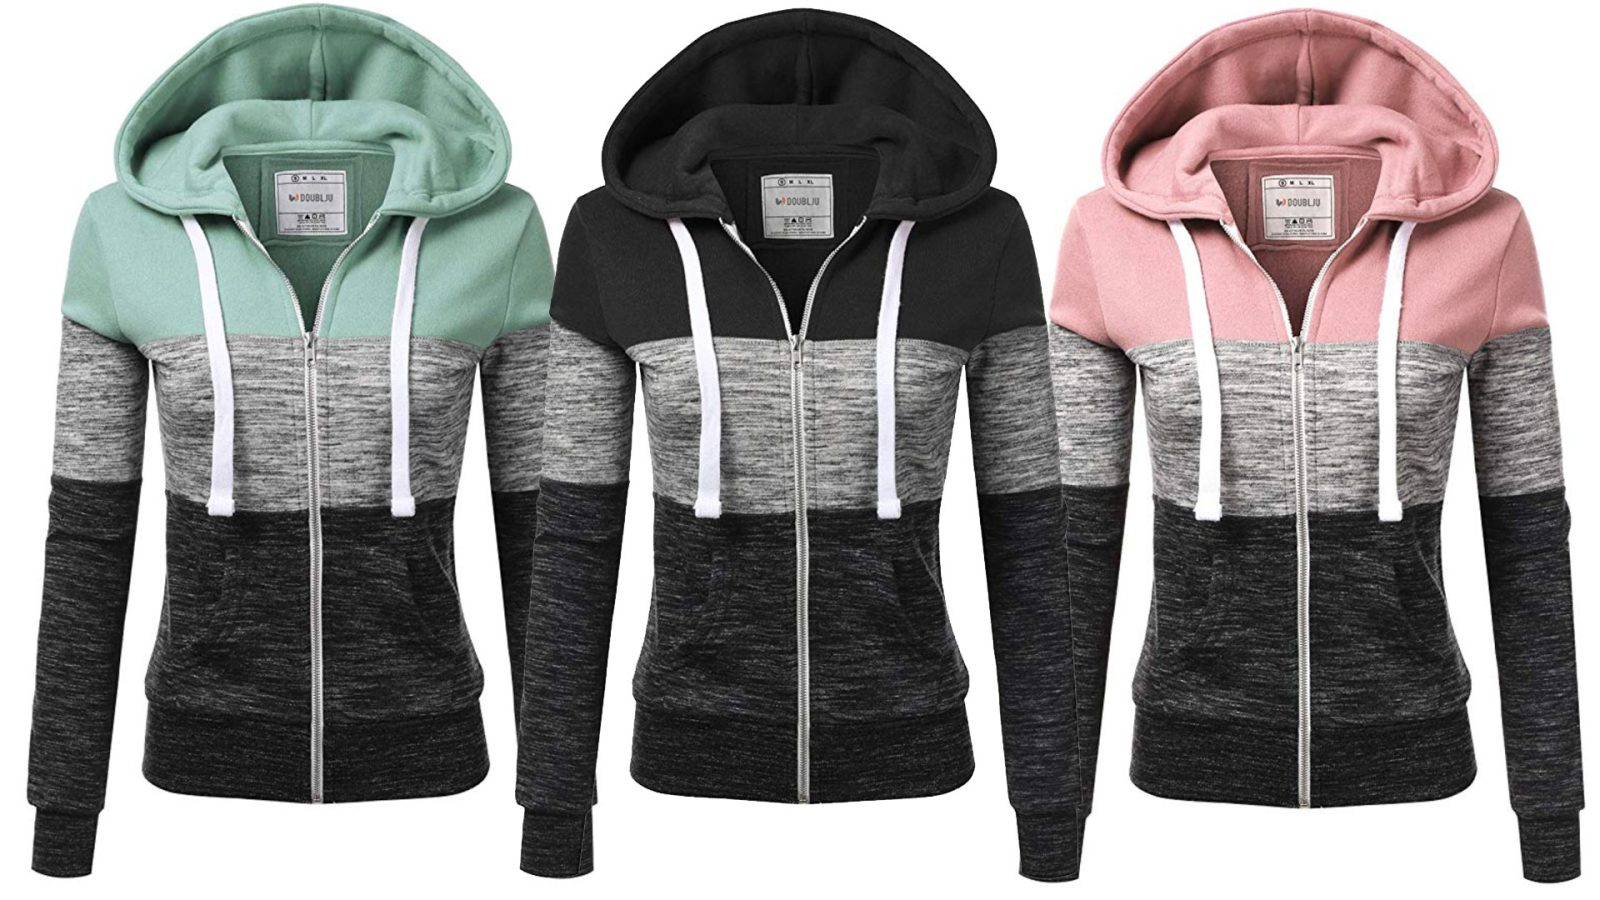 Fall is a week away, this lightweight zip-up hoodie keeps you warm for $21.50